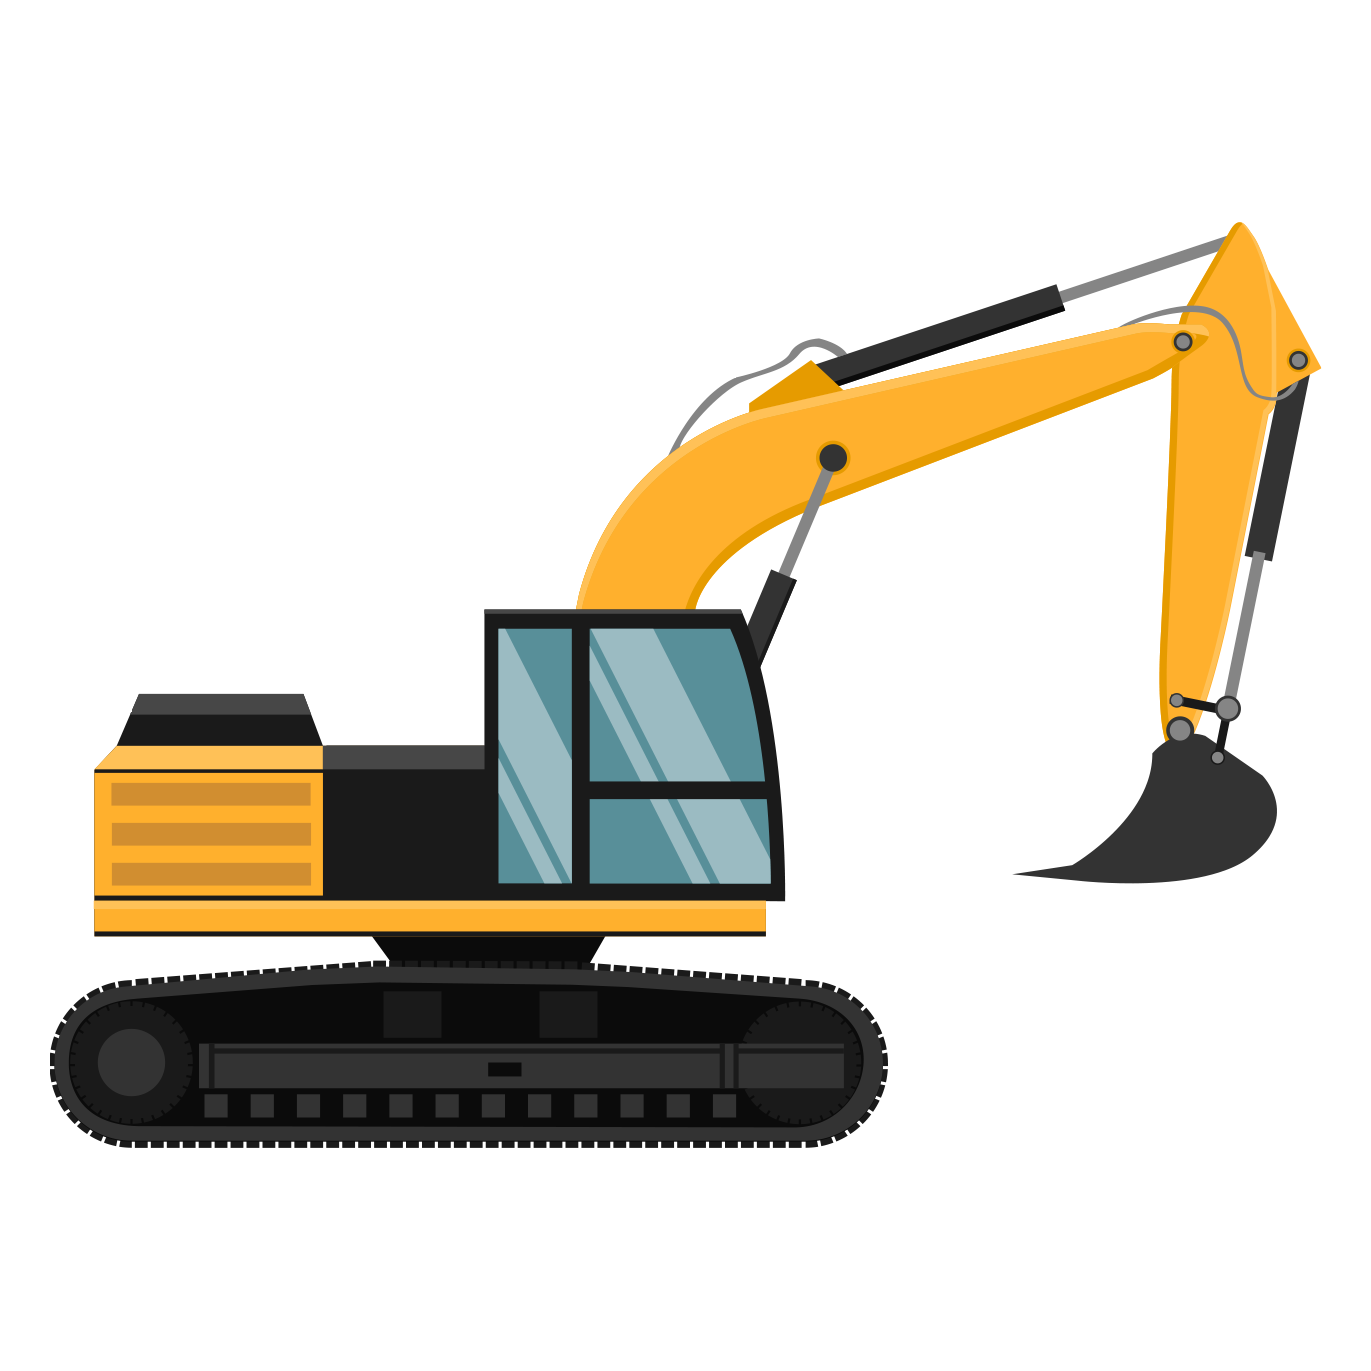 Crane clipart under construction. Machinery png hd image